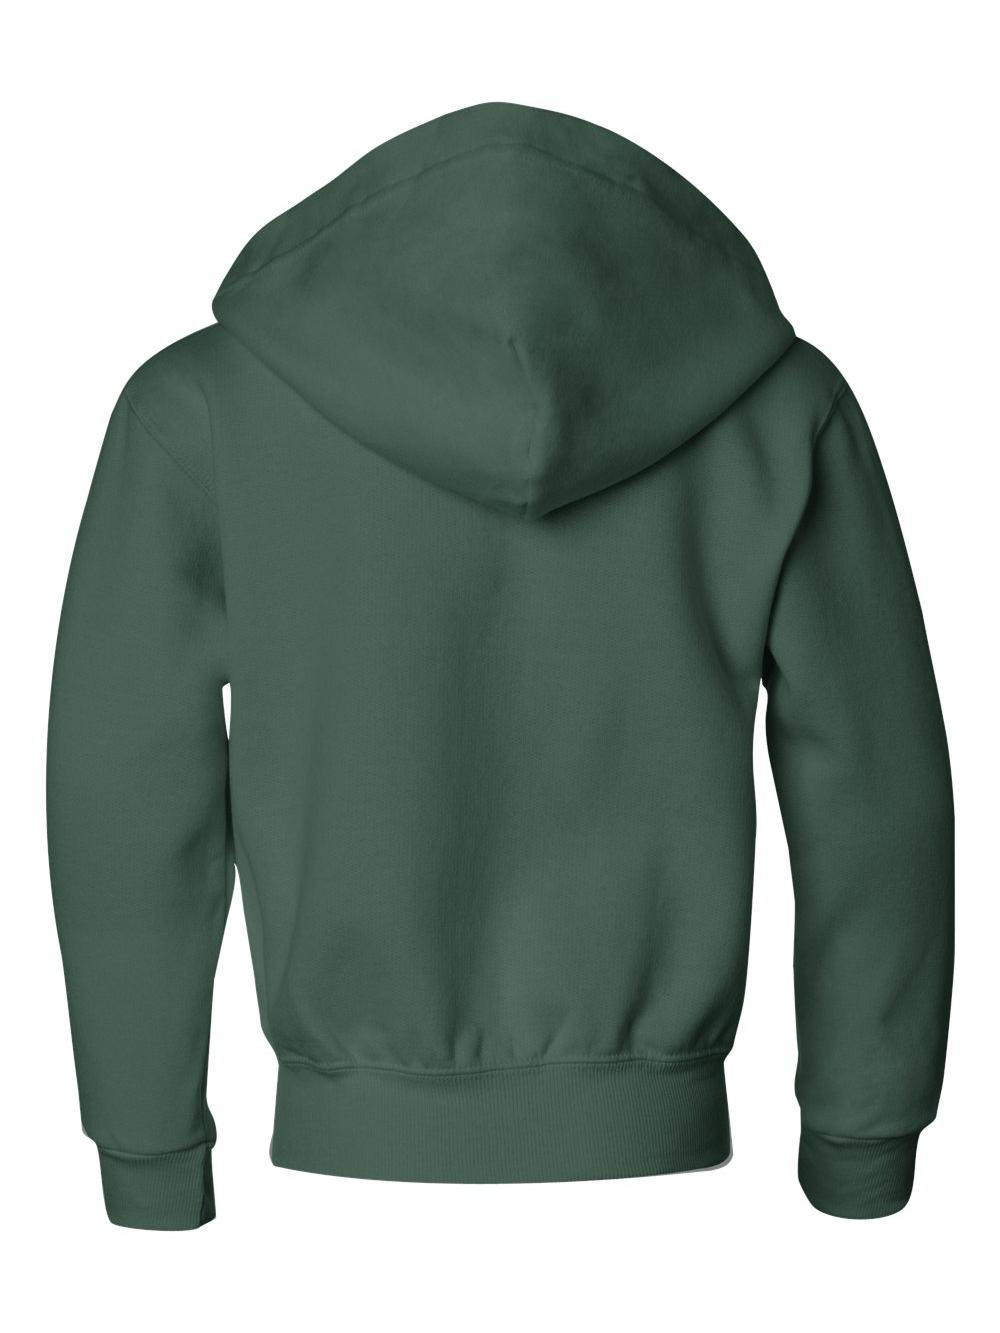 Jerzees 993BR NuBlend Youth Full-Zip Hooded Sweatshirt